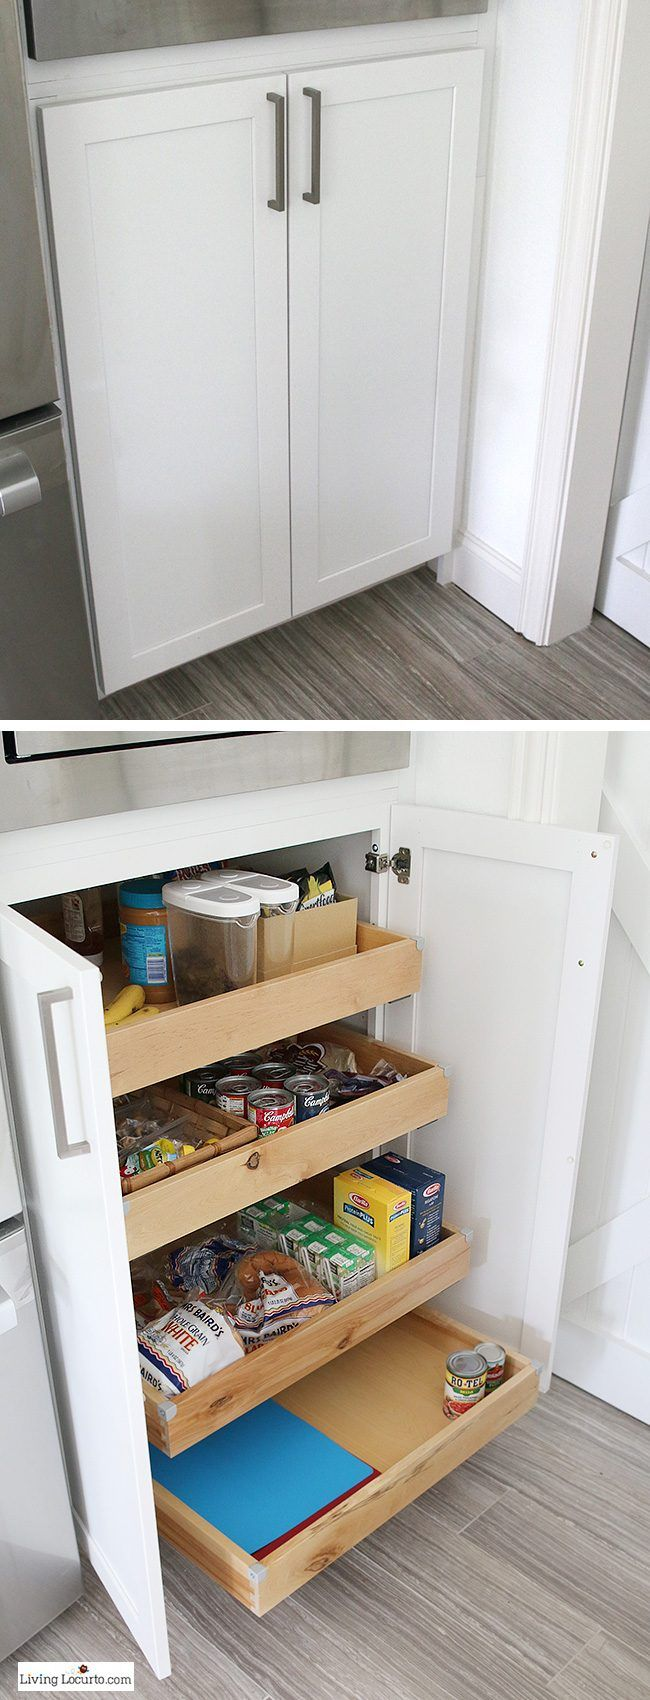 The best Kitchen Cabinet Organization Ideas! This Modern Farmhouse ...